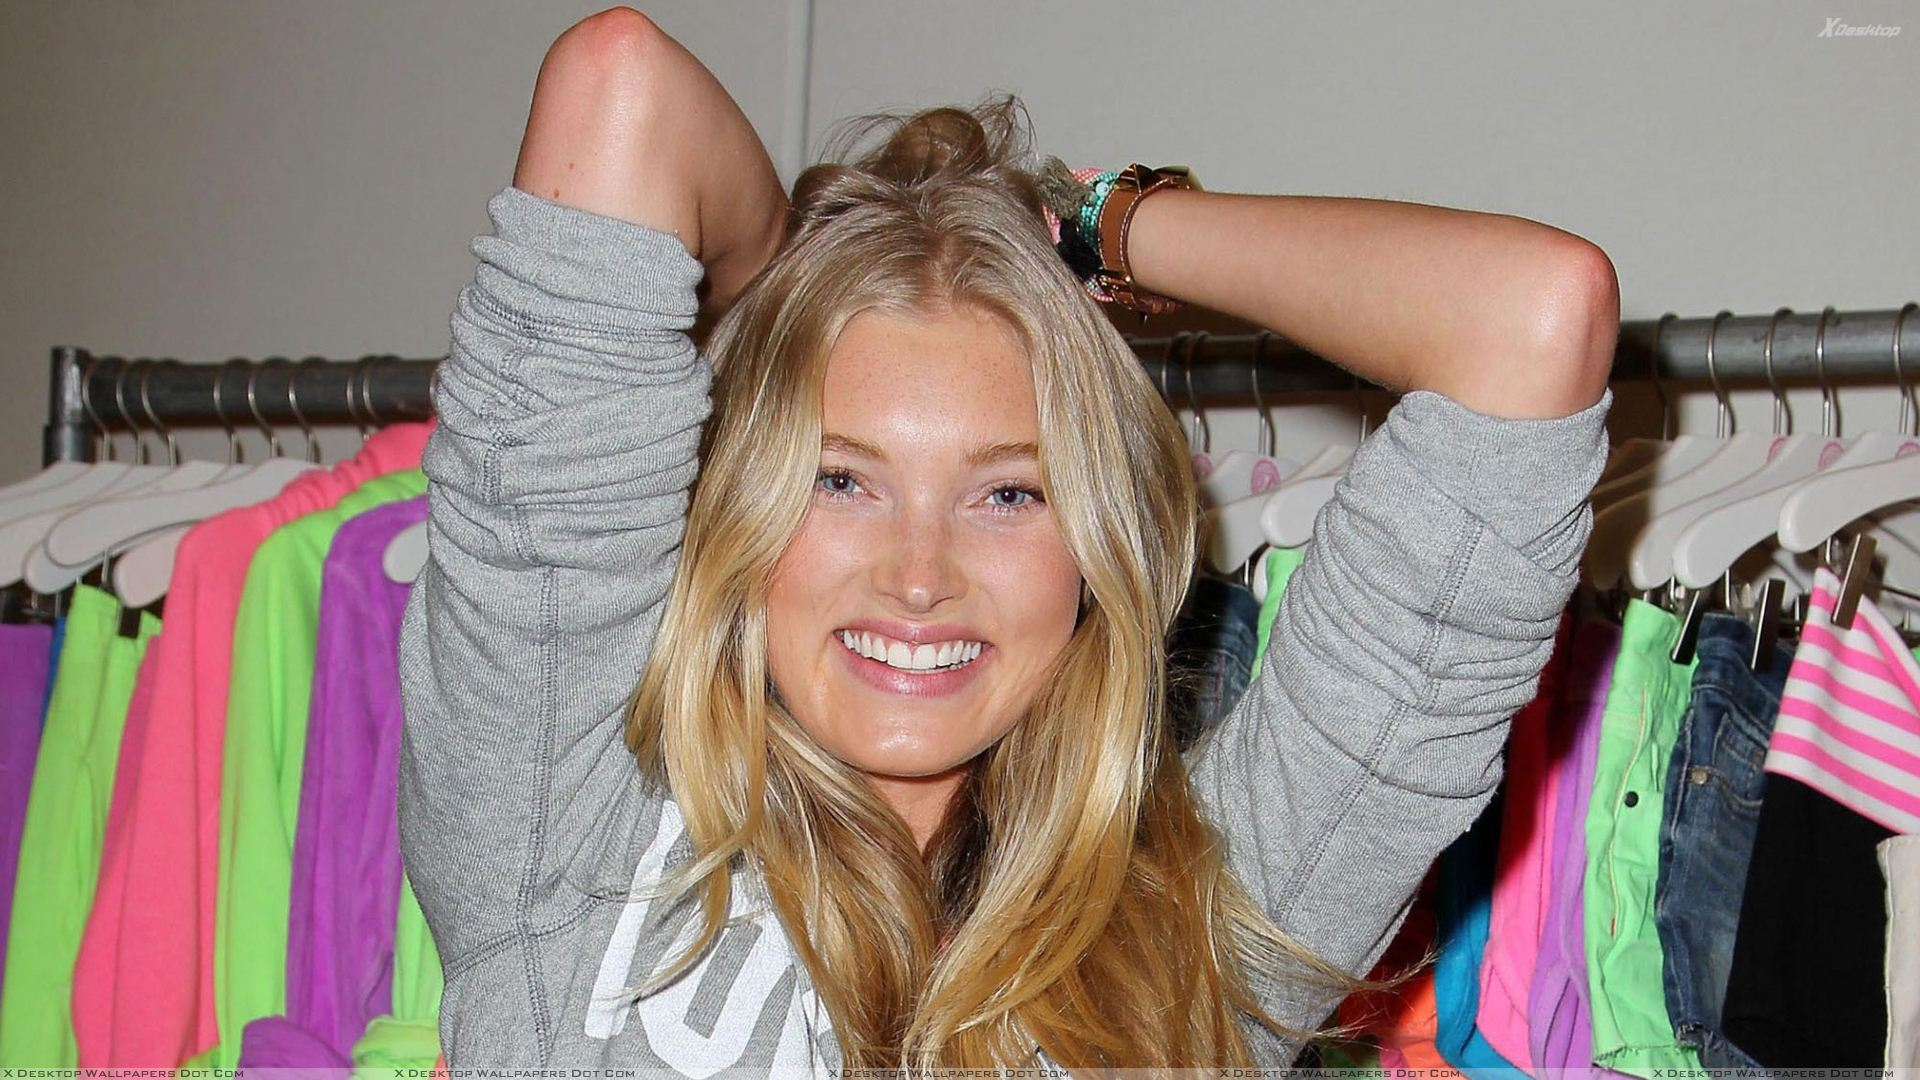 Elsa hosk wallpapers photos amp images in hd